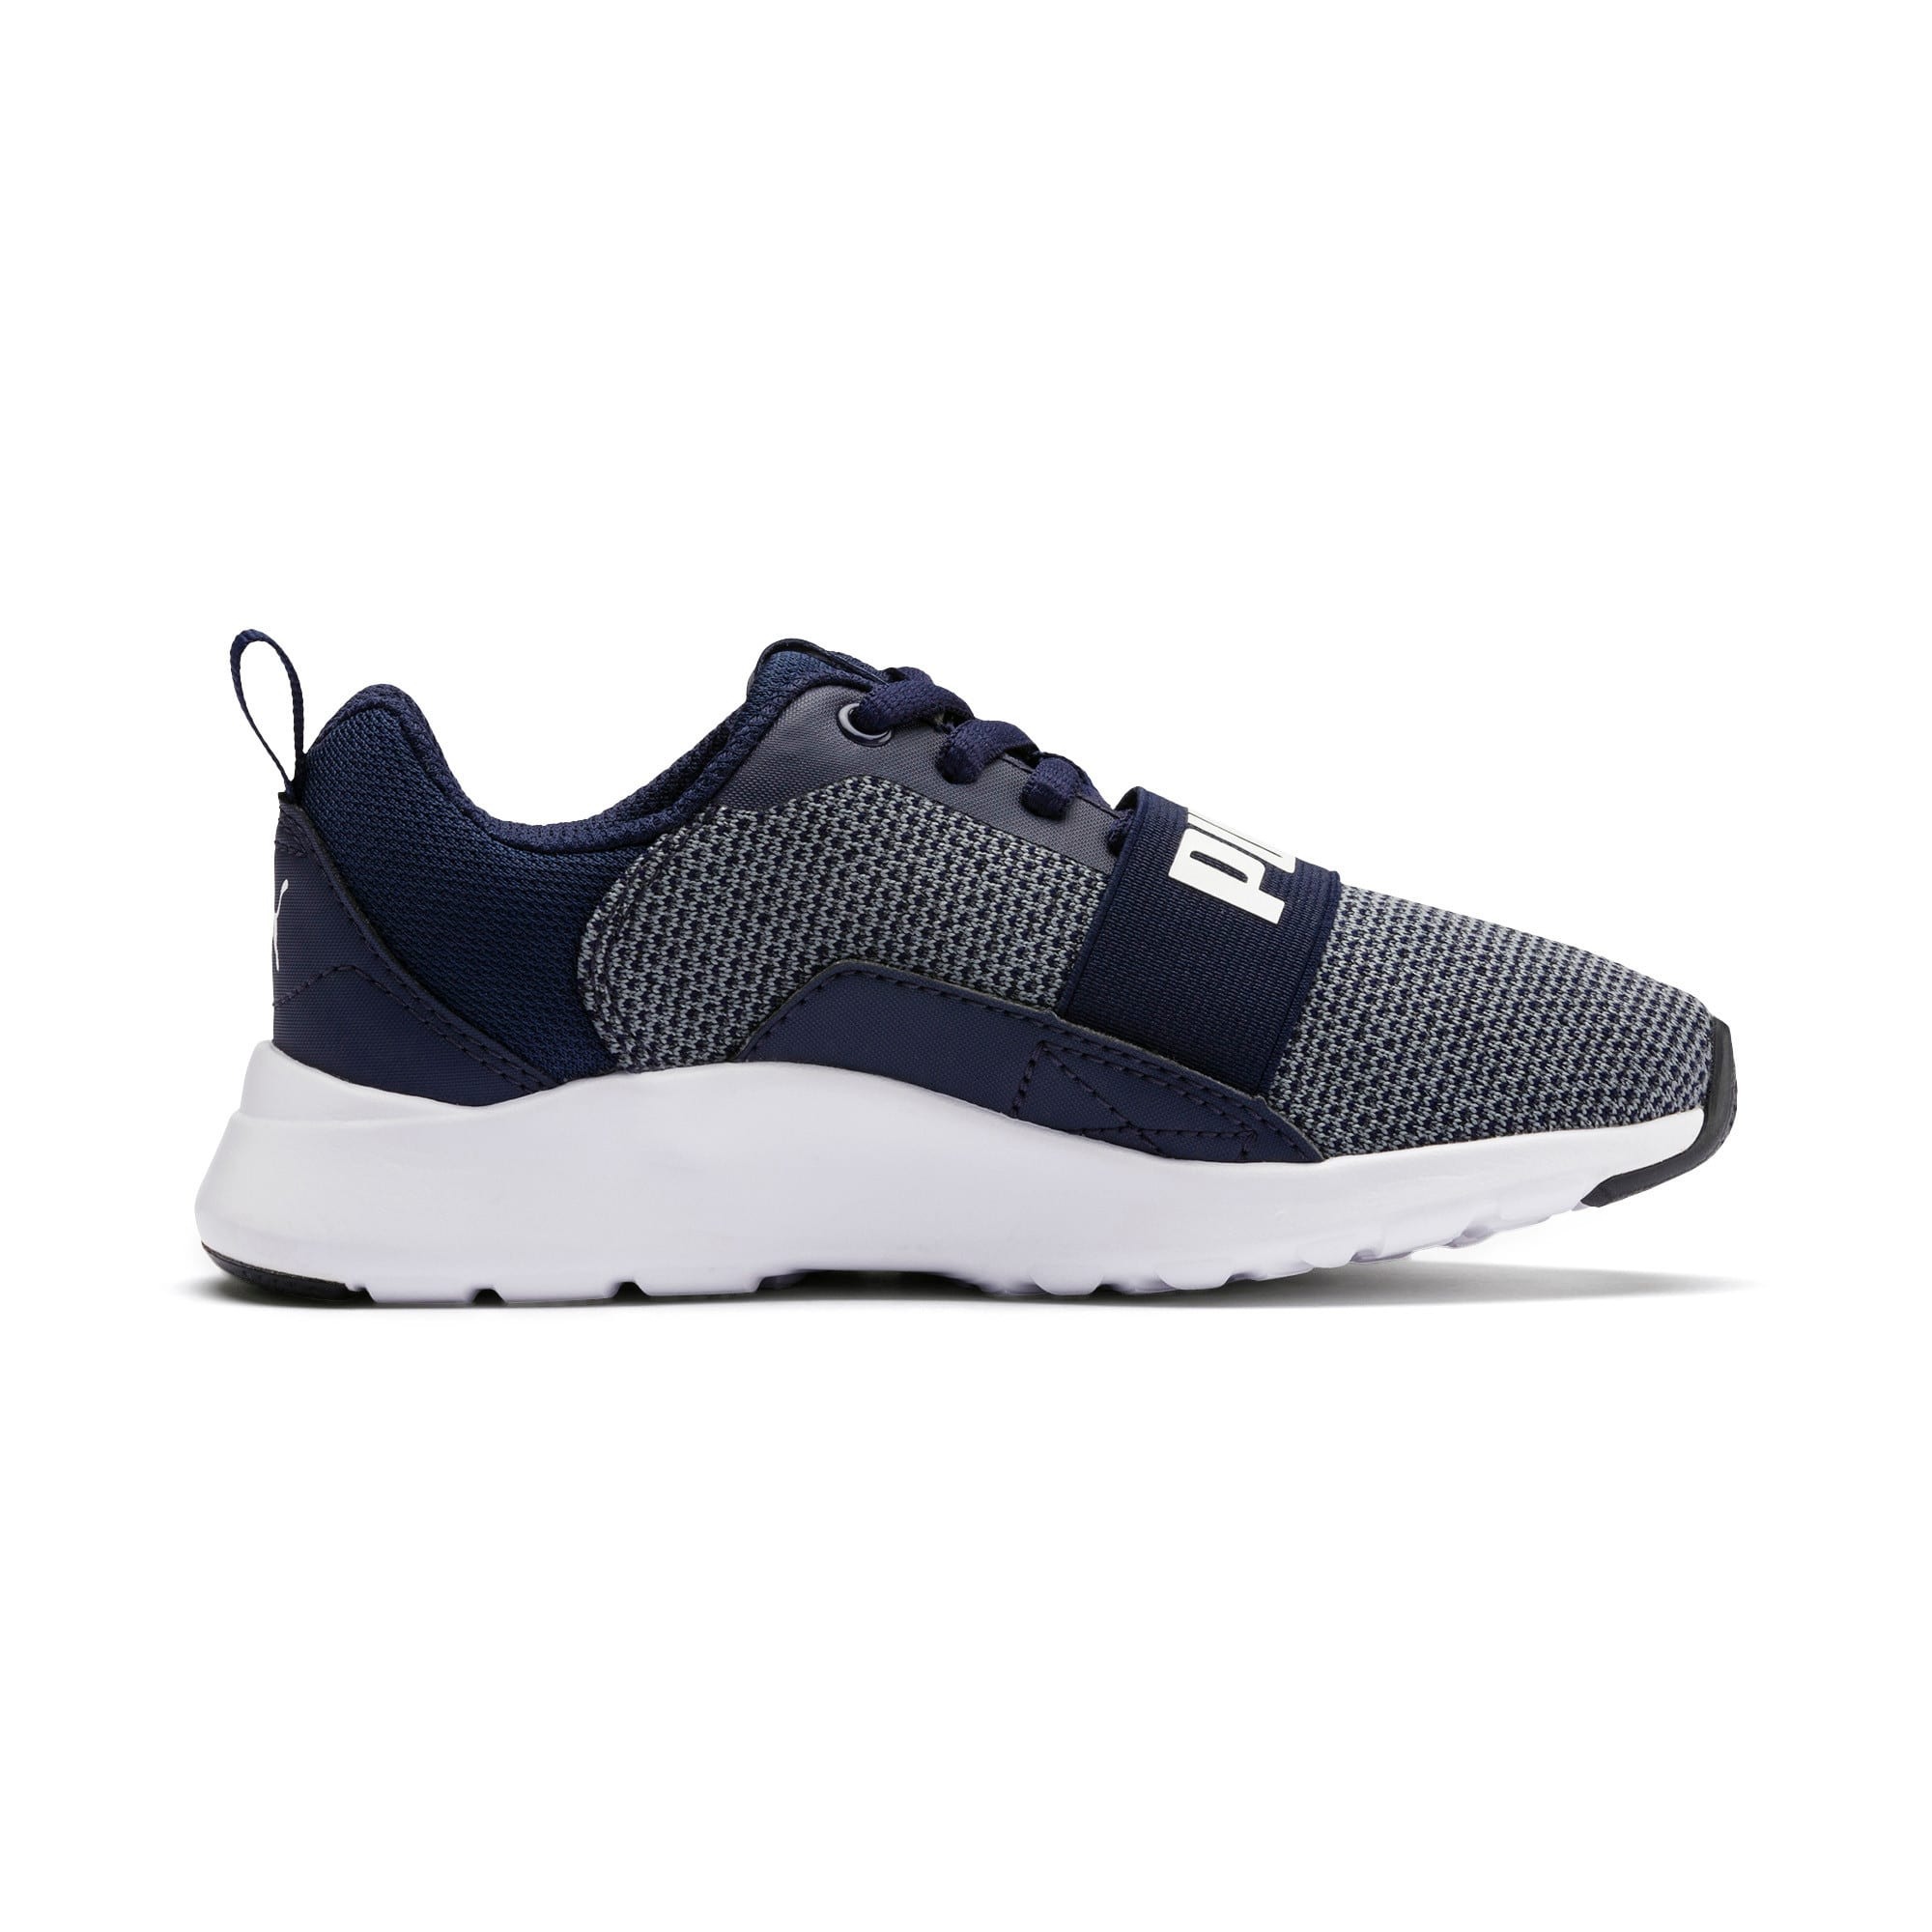 Thumbnail 5 of Wired Knit Kids' Trainers, Peacoat-Puma White, medium-IND